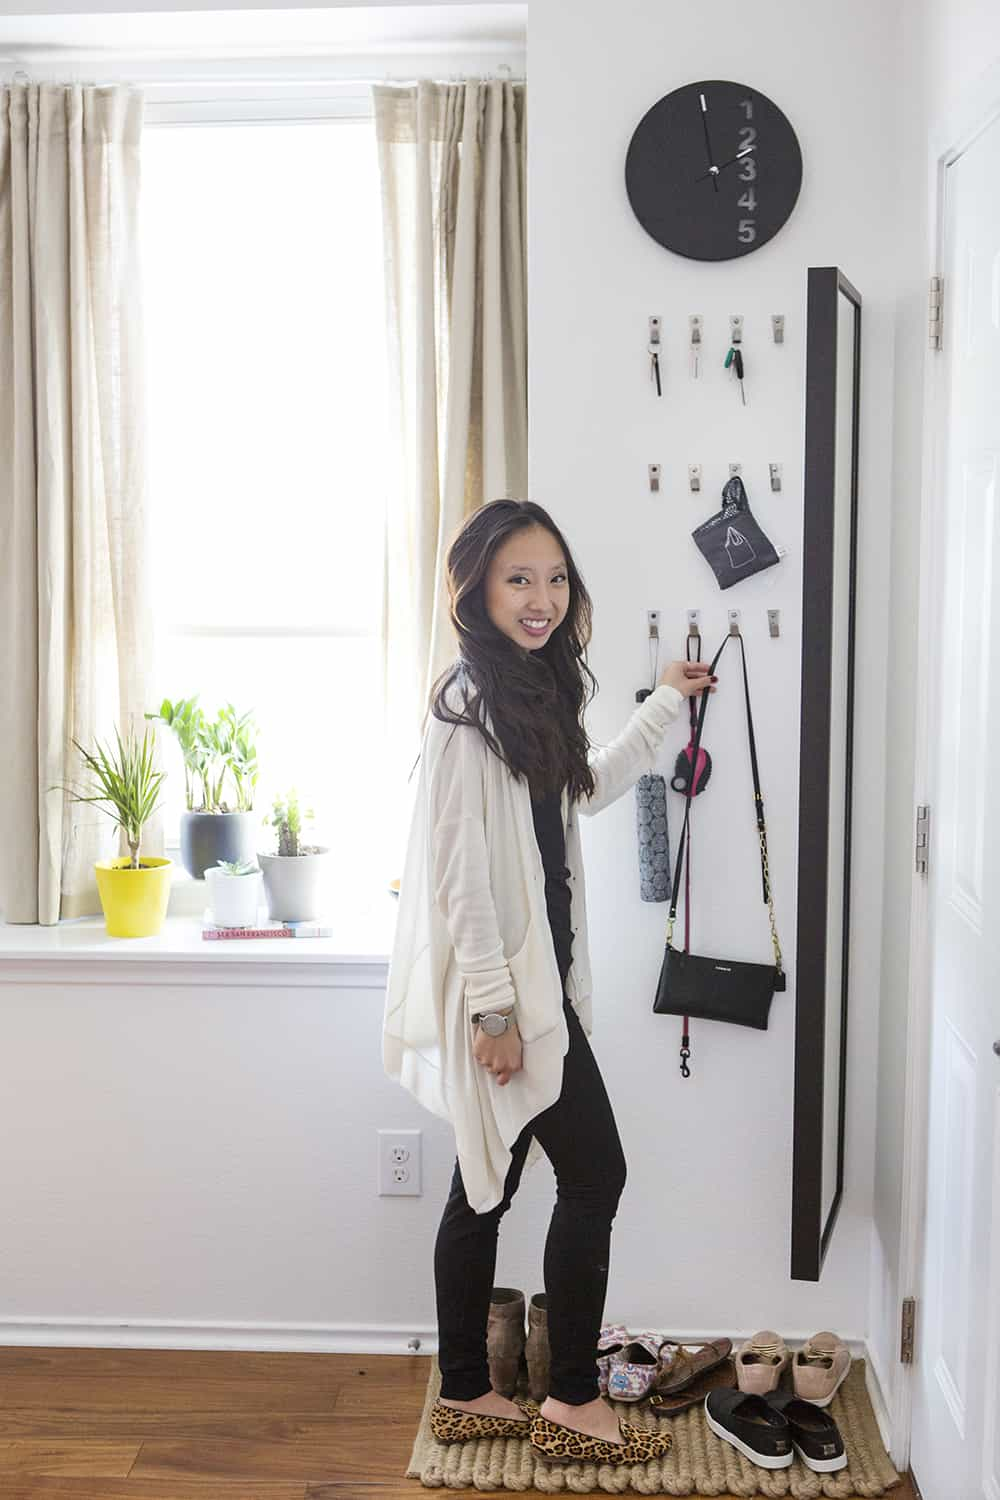 Before & After: Small Space Entryway Storage Makeover